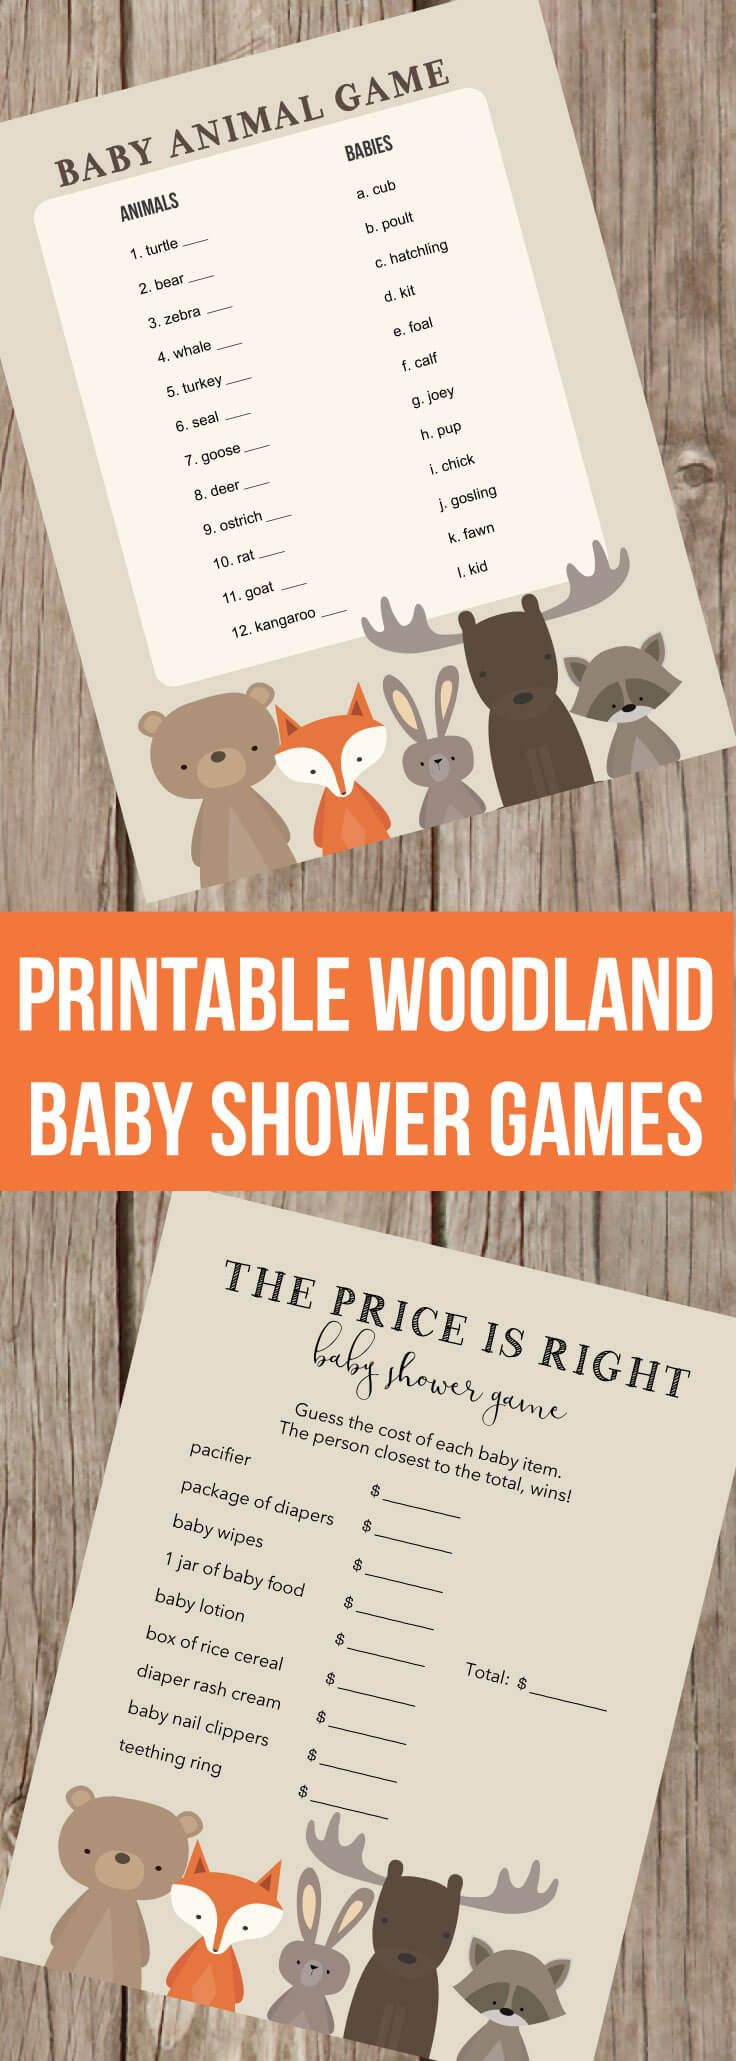 free printable camo baby shower invitations templates%0A Printable Woodland Baby Shower Games  The Price Is Right  Left Right Game   Baby